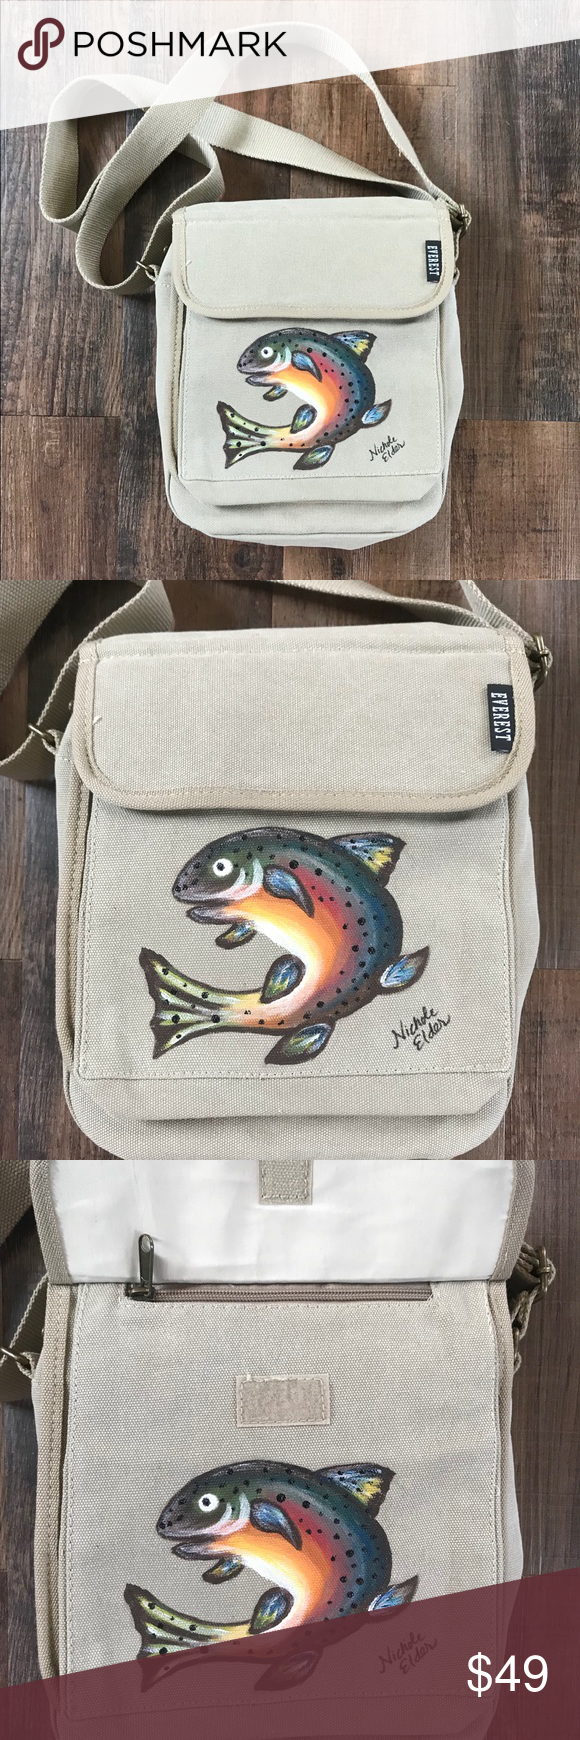 Men s Messenger Bag with Painted Rainbow Trout Everest canvas messenger bag.  Large enough for an IPad or Tablet. Sturdy heavyweight cotton canvas. 7fd95f6778940